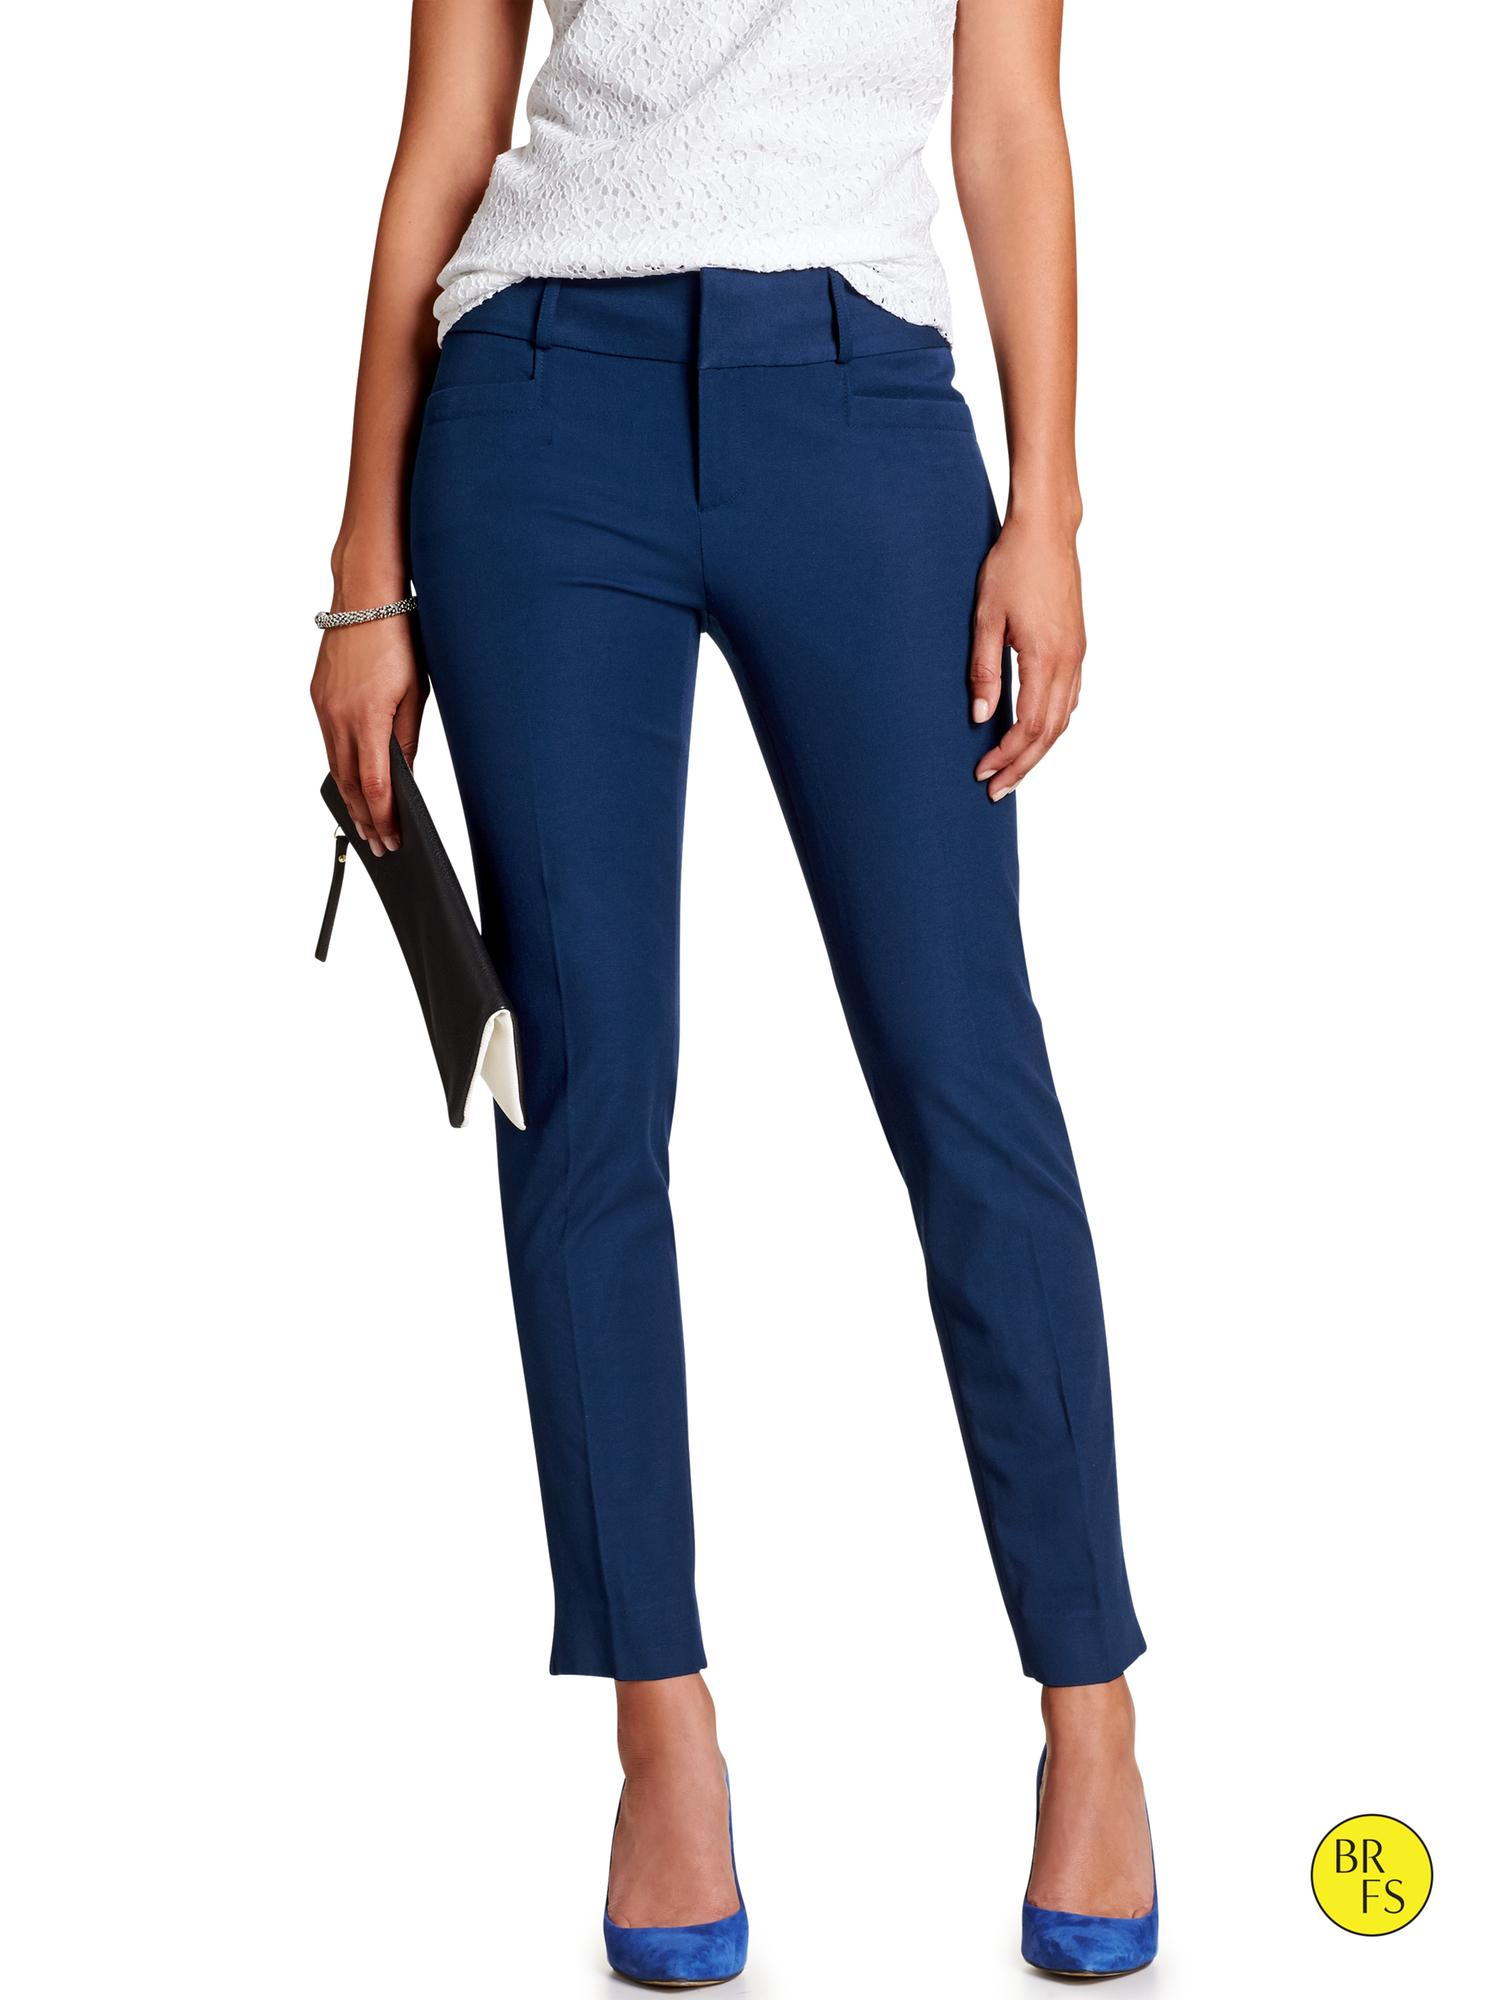 Banana republic Factory Jackson fit Slim Ankle Pant in